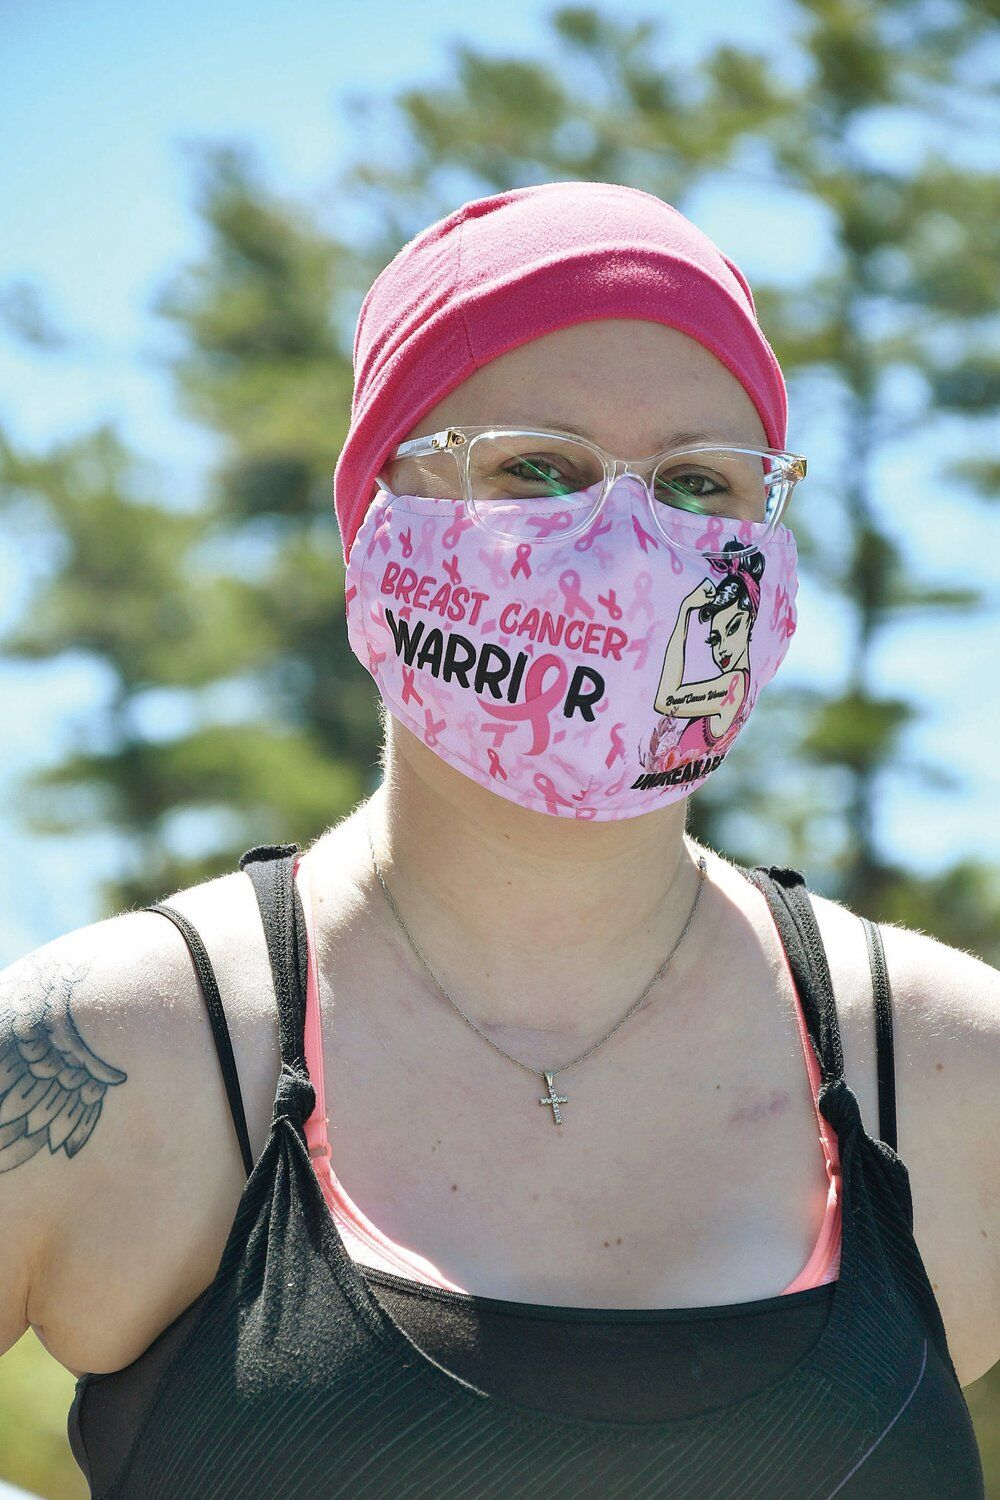 A pink-clad warrior: Running serves as rallying cry for Flaherty amid terminal cancer diagnosis